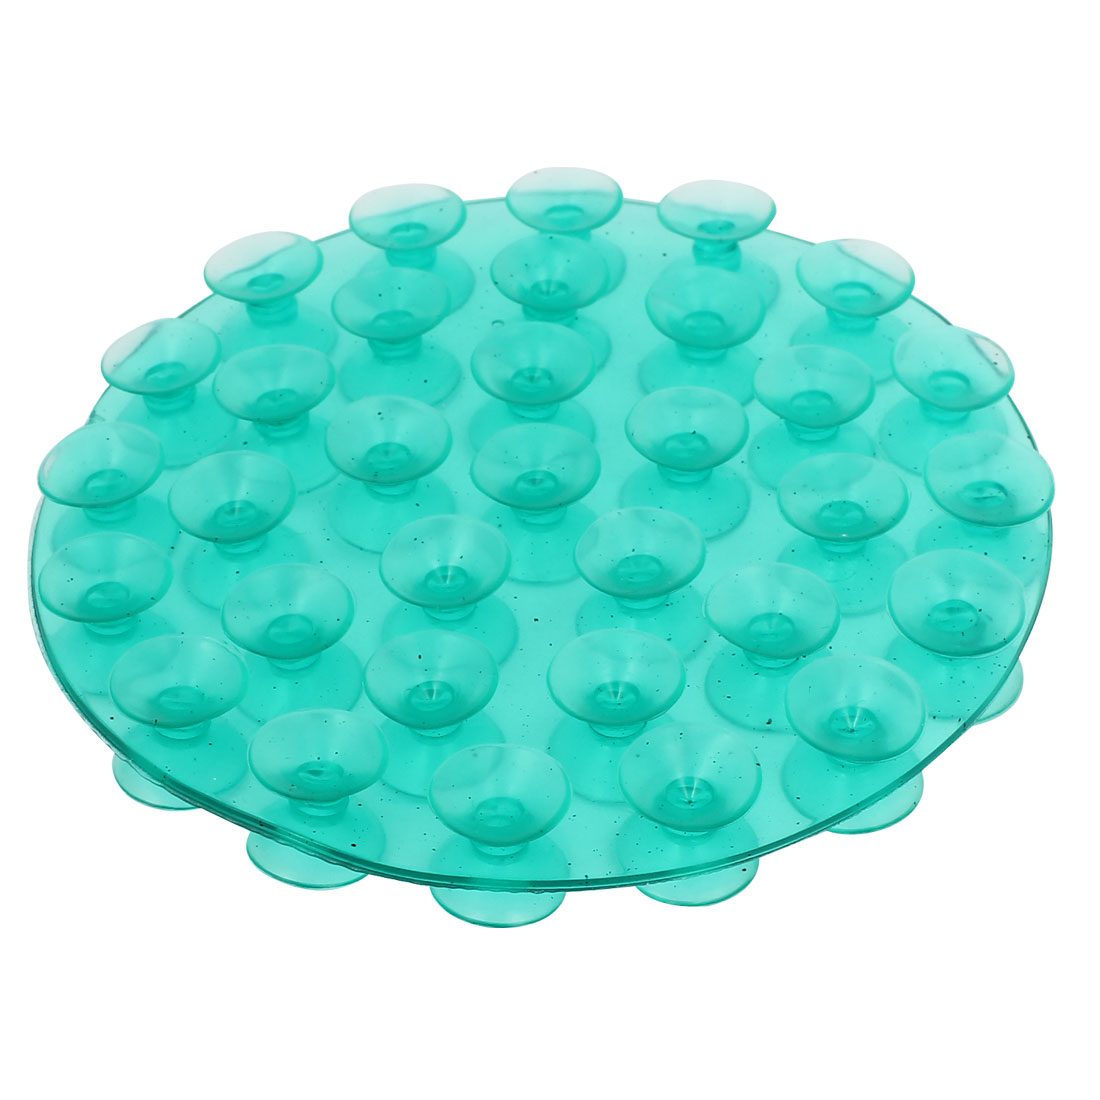 Green Soft Plastic Double-Sided Round Shape Nonslip Pad Soap Sticker Holder Suction Cup